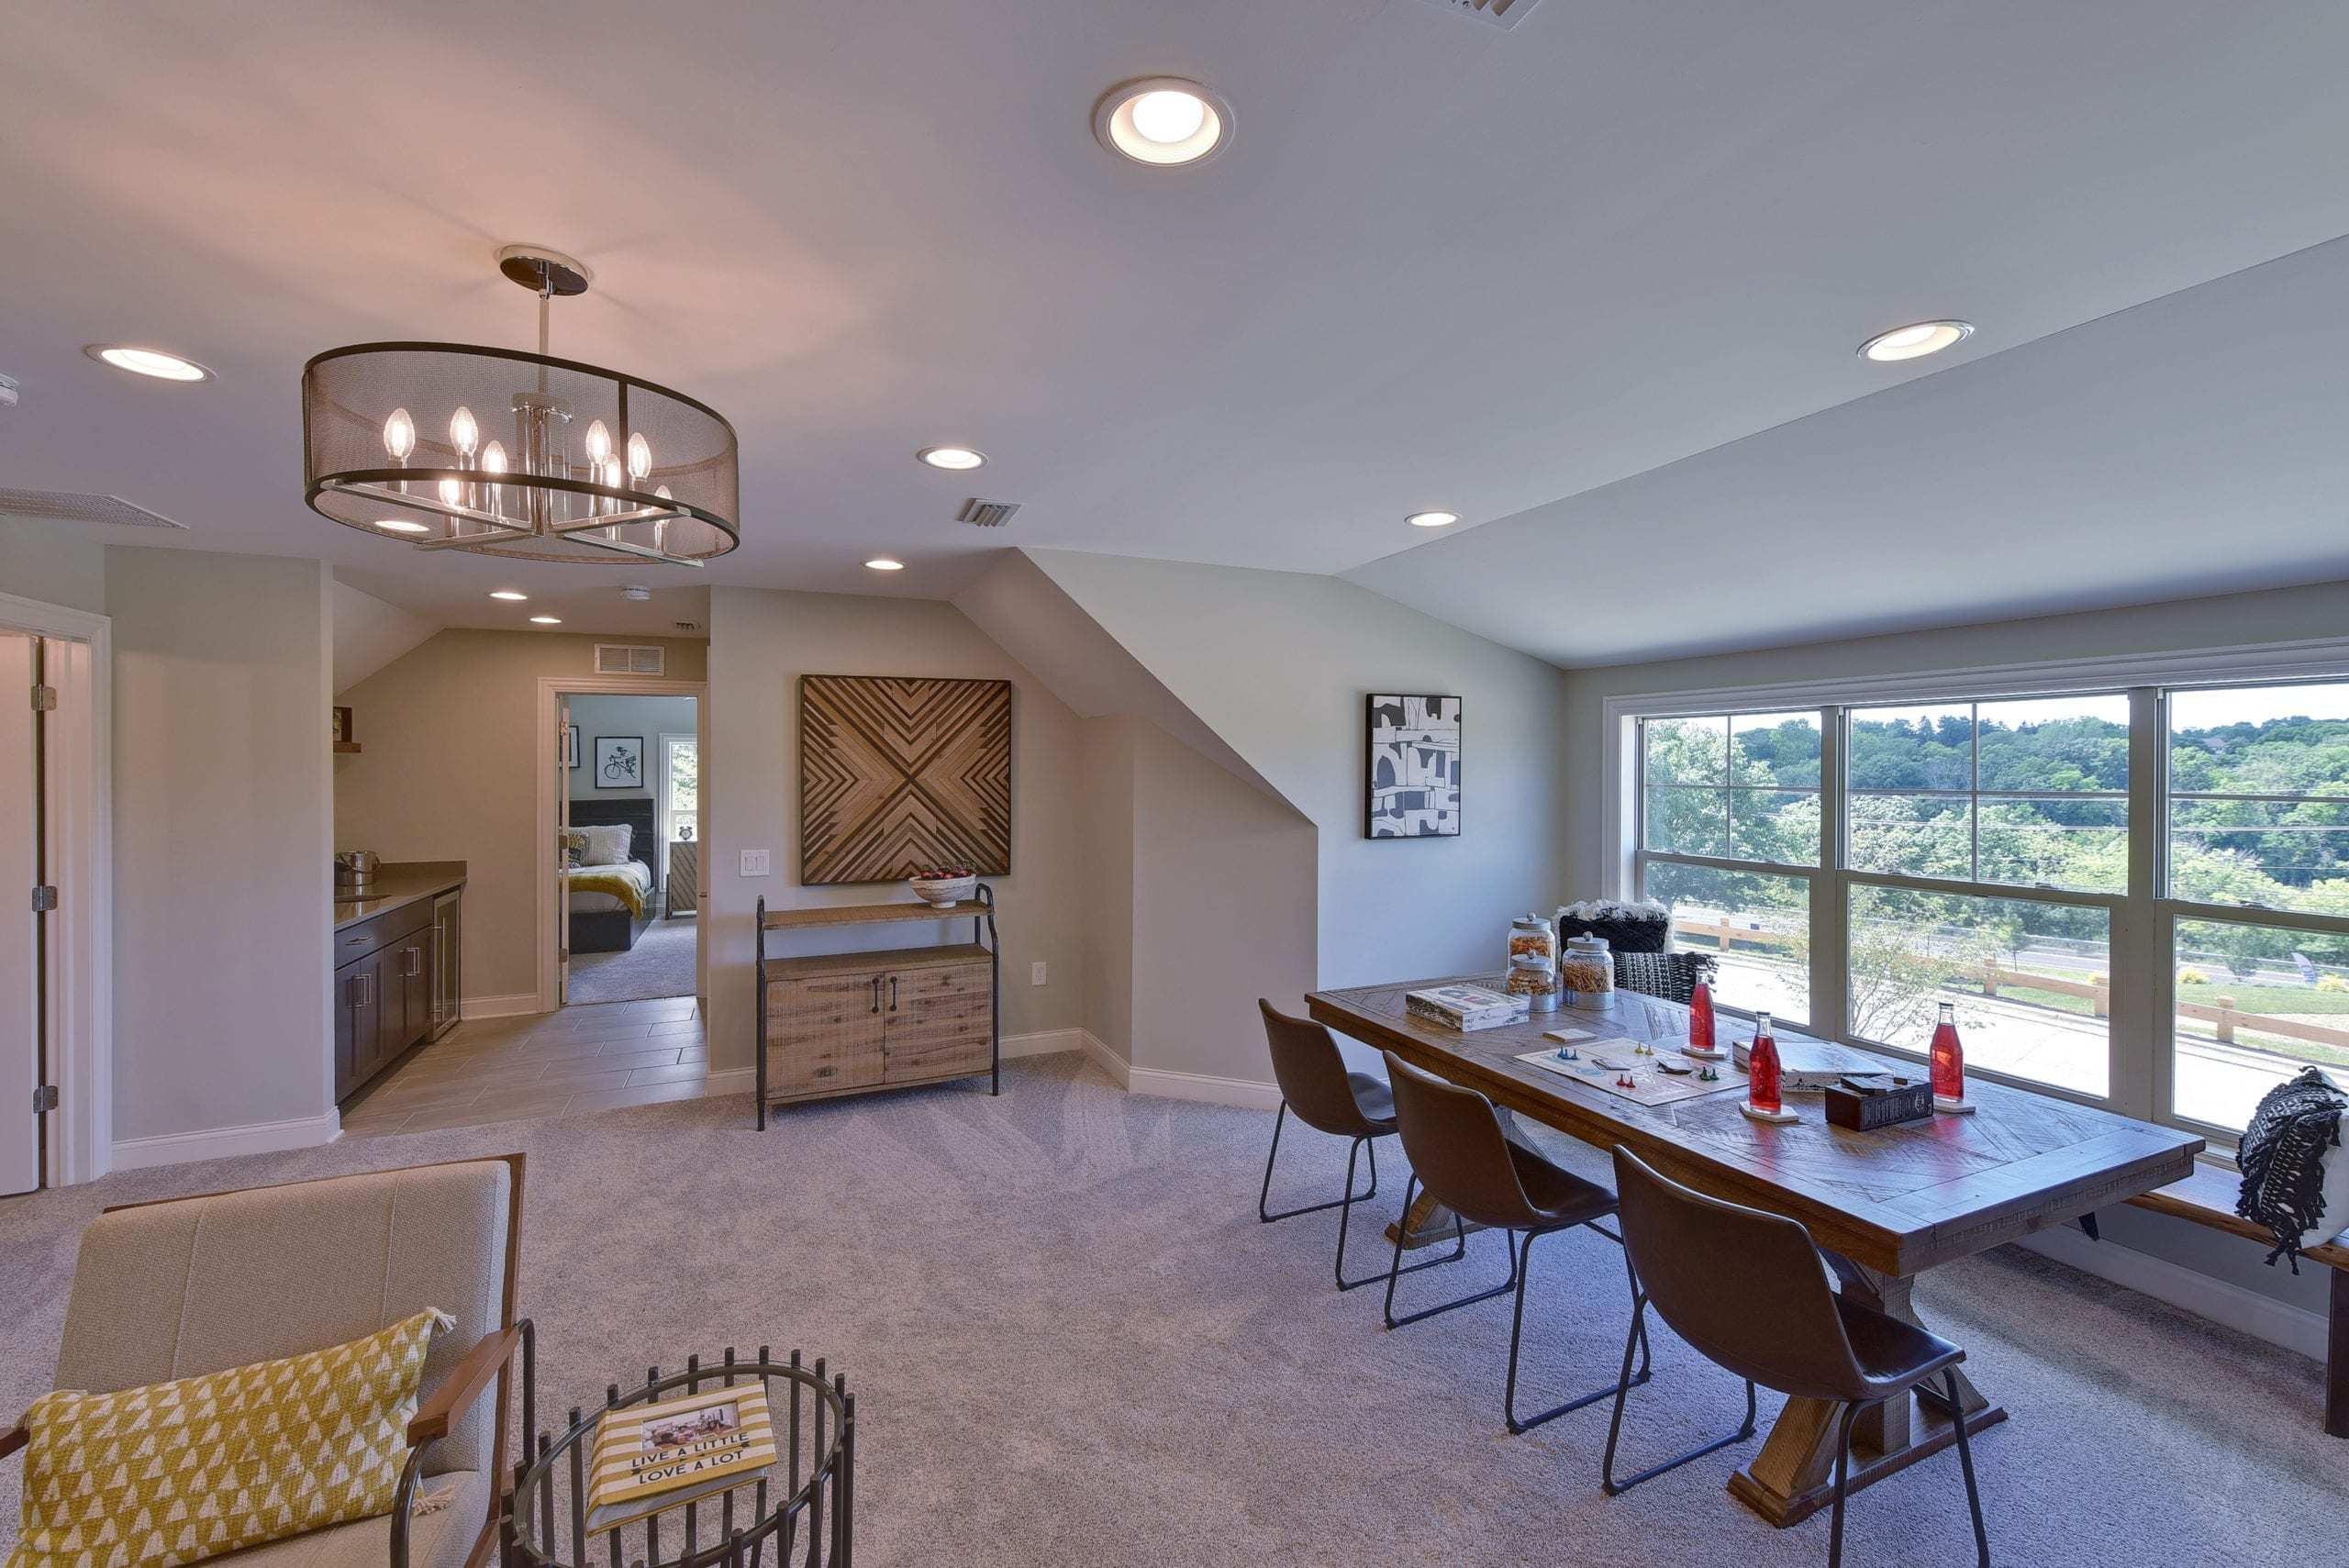 Living Area featured in the Promenade III - Charlotte** By Epcon Communities in Charlotte, NC